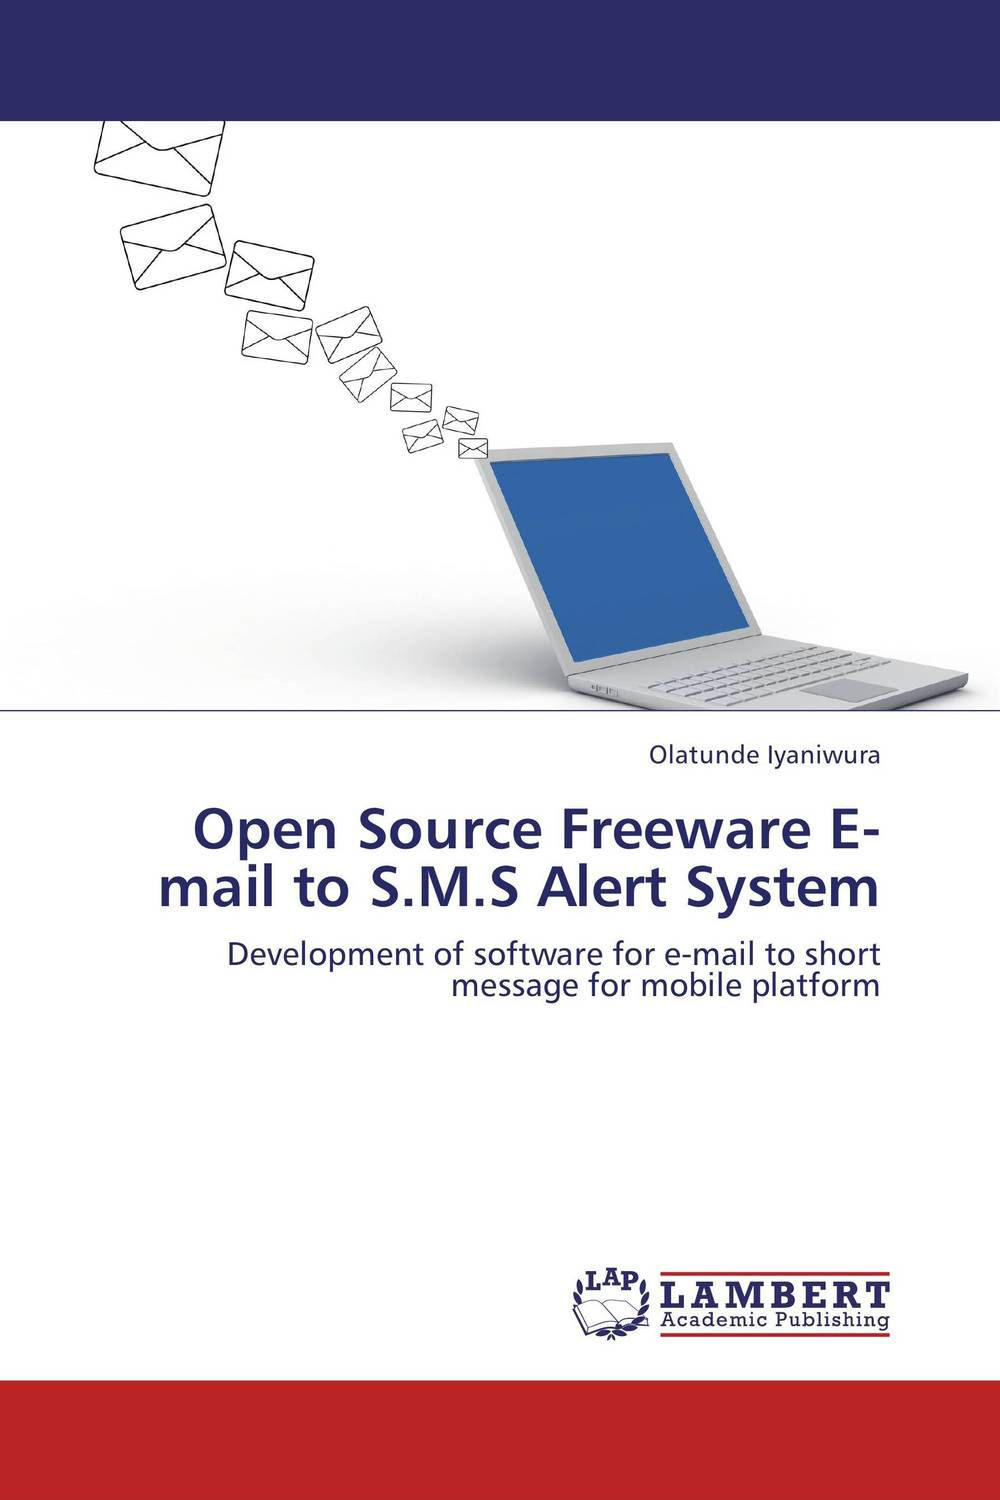 Open Source Freeware E-mail to S.M.S Alert System assessing factors promoting open source software quality